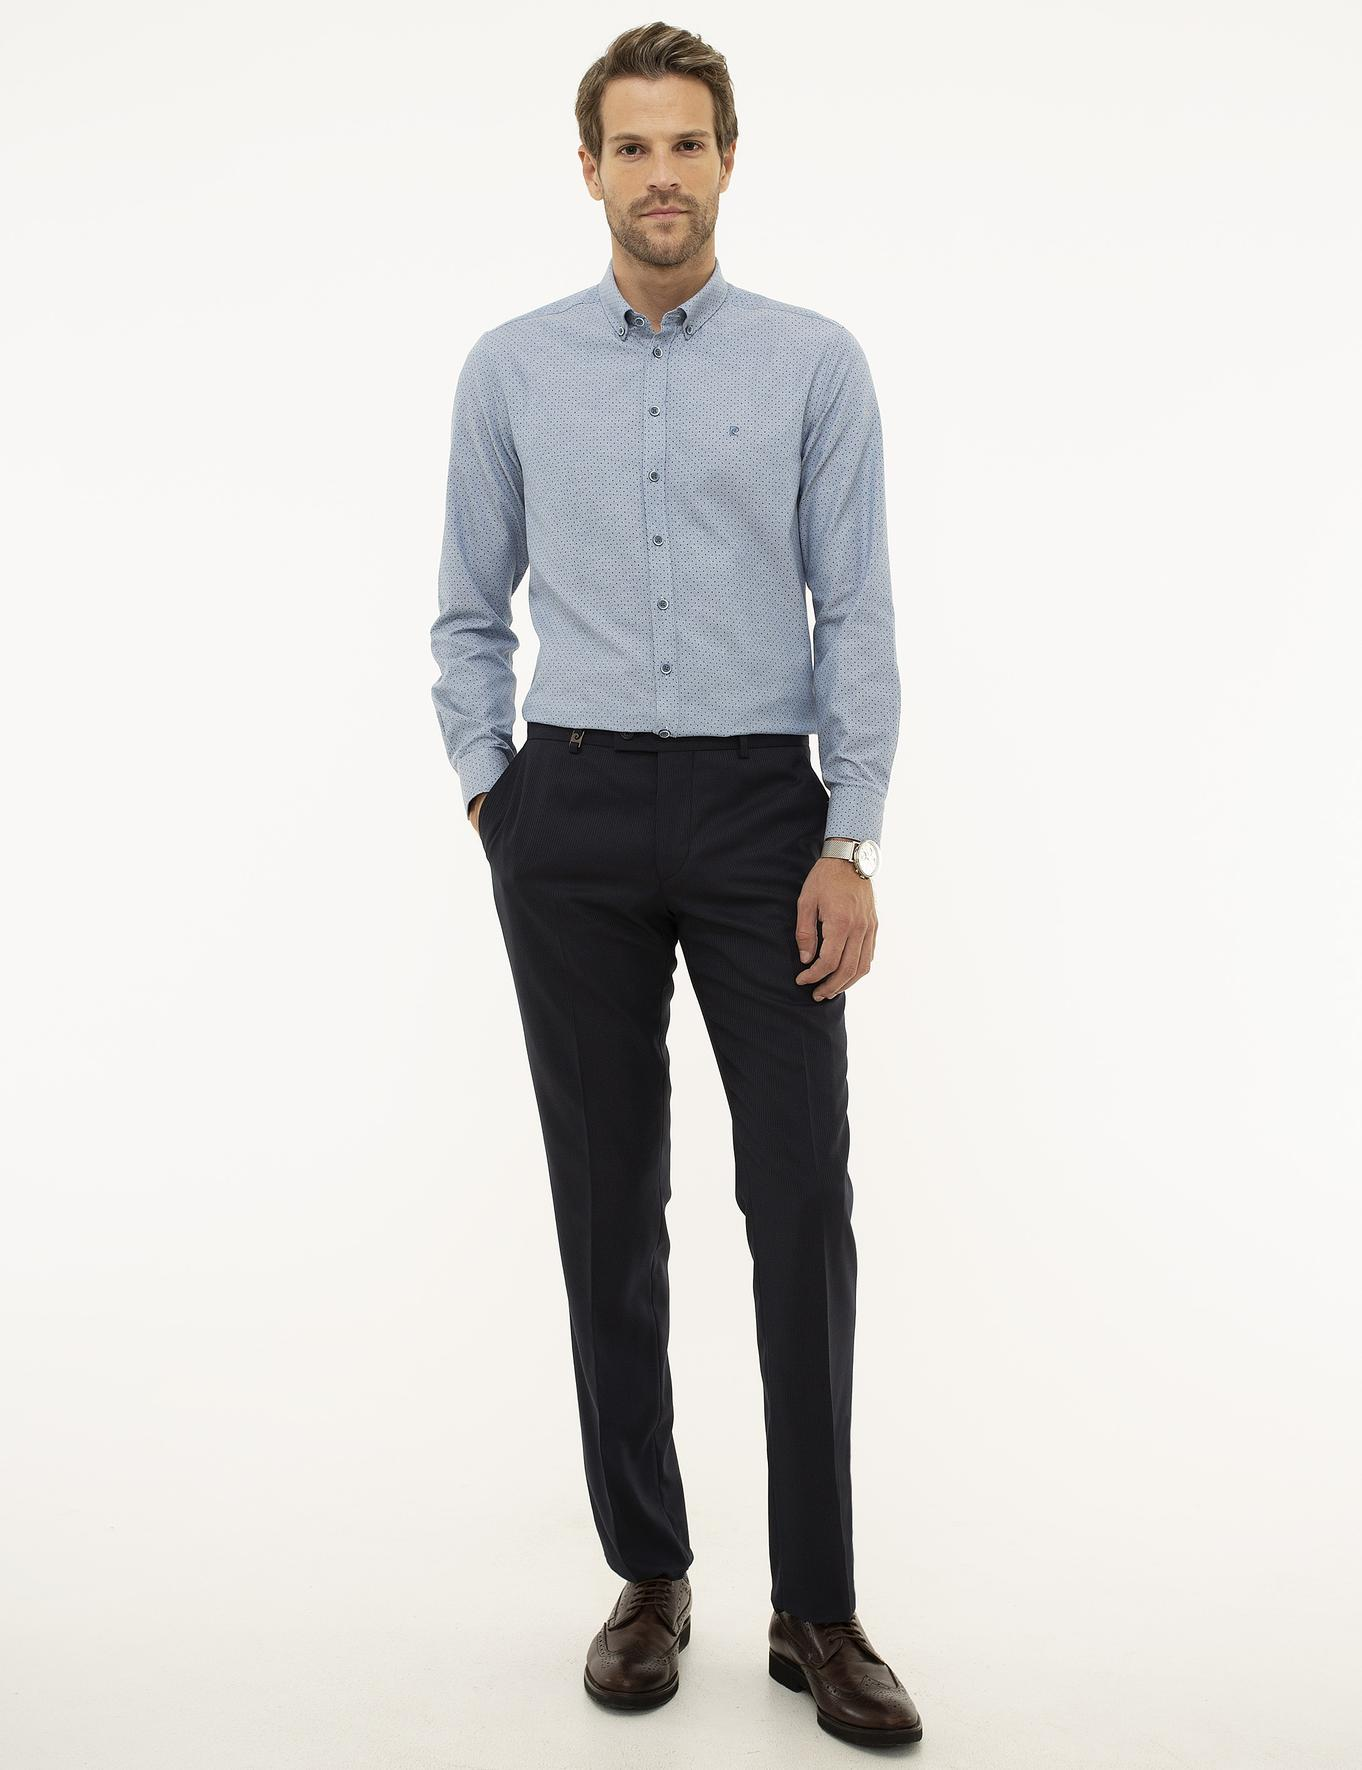 Açık Lacivert Slim Fit Pantolon